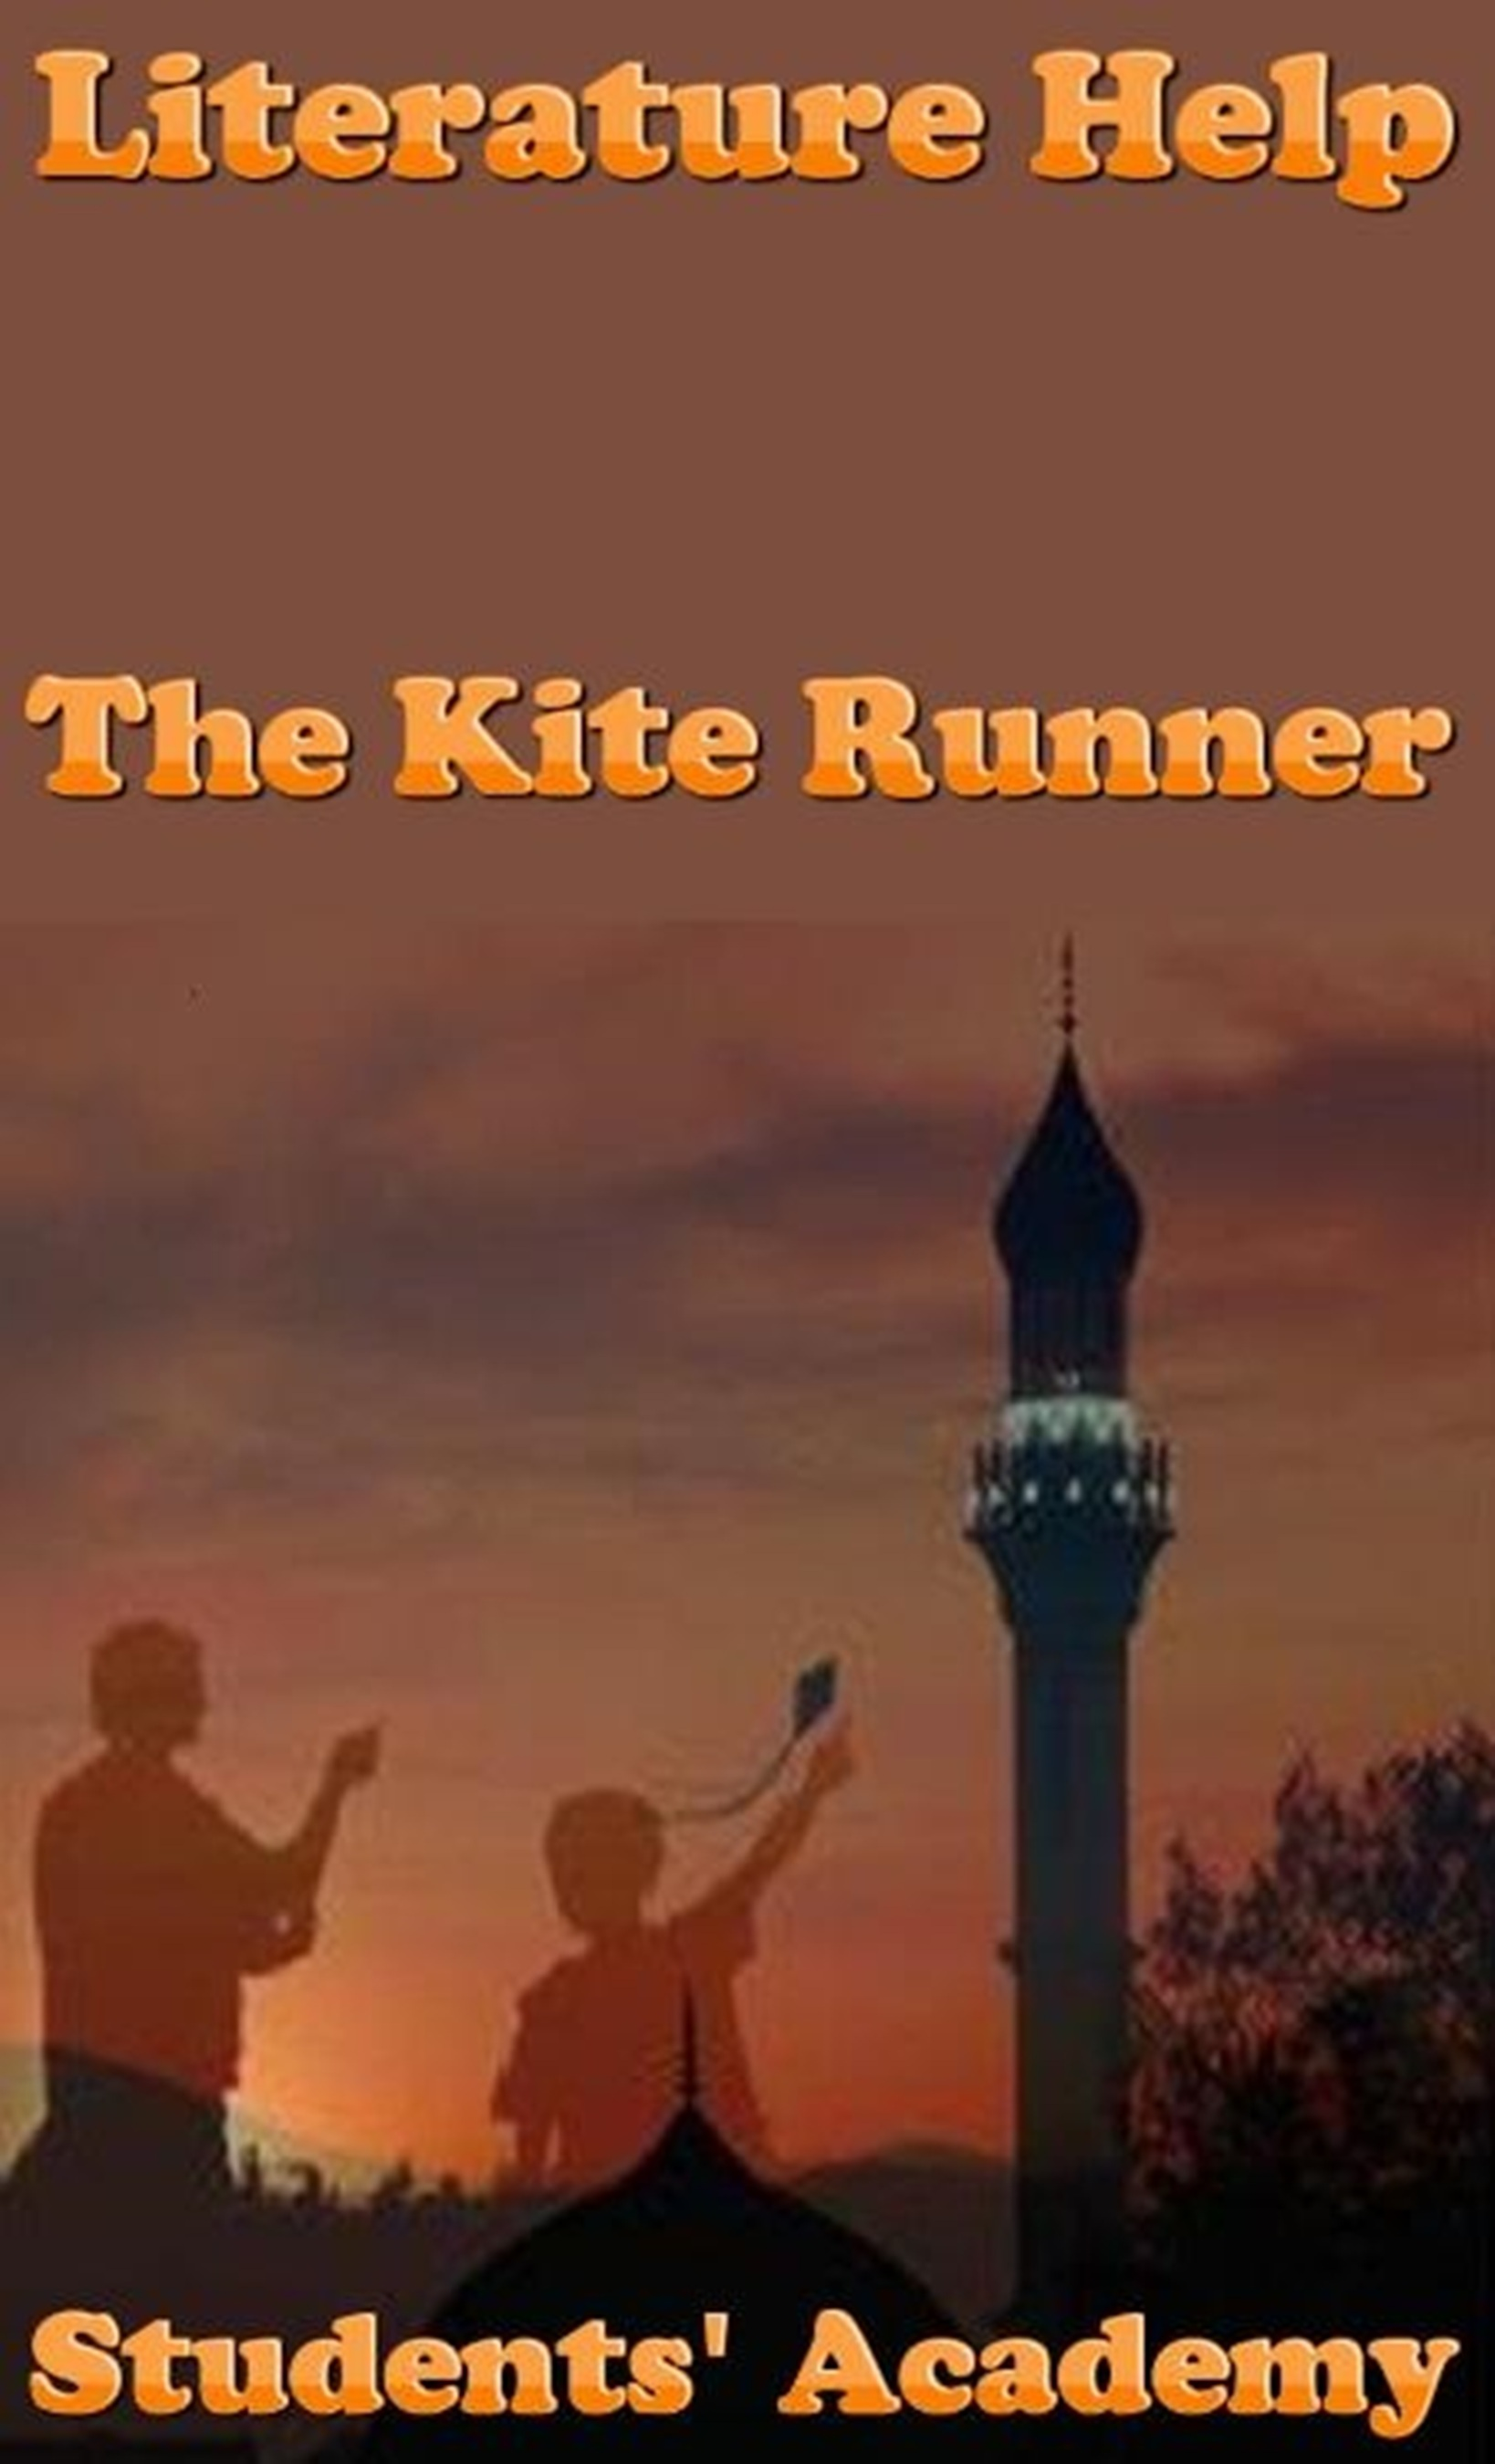 the kite runner literary analysis on redemption The kite runner concept analysis literary text: friendship and love and how can you obtain redemption/forgiveness the kite runner takes place in a few.